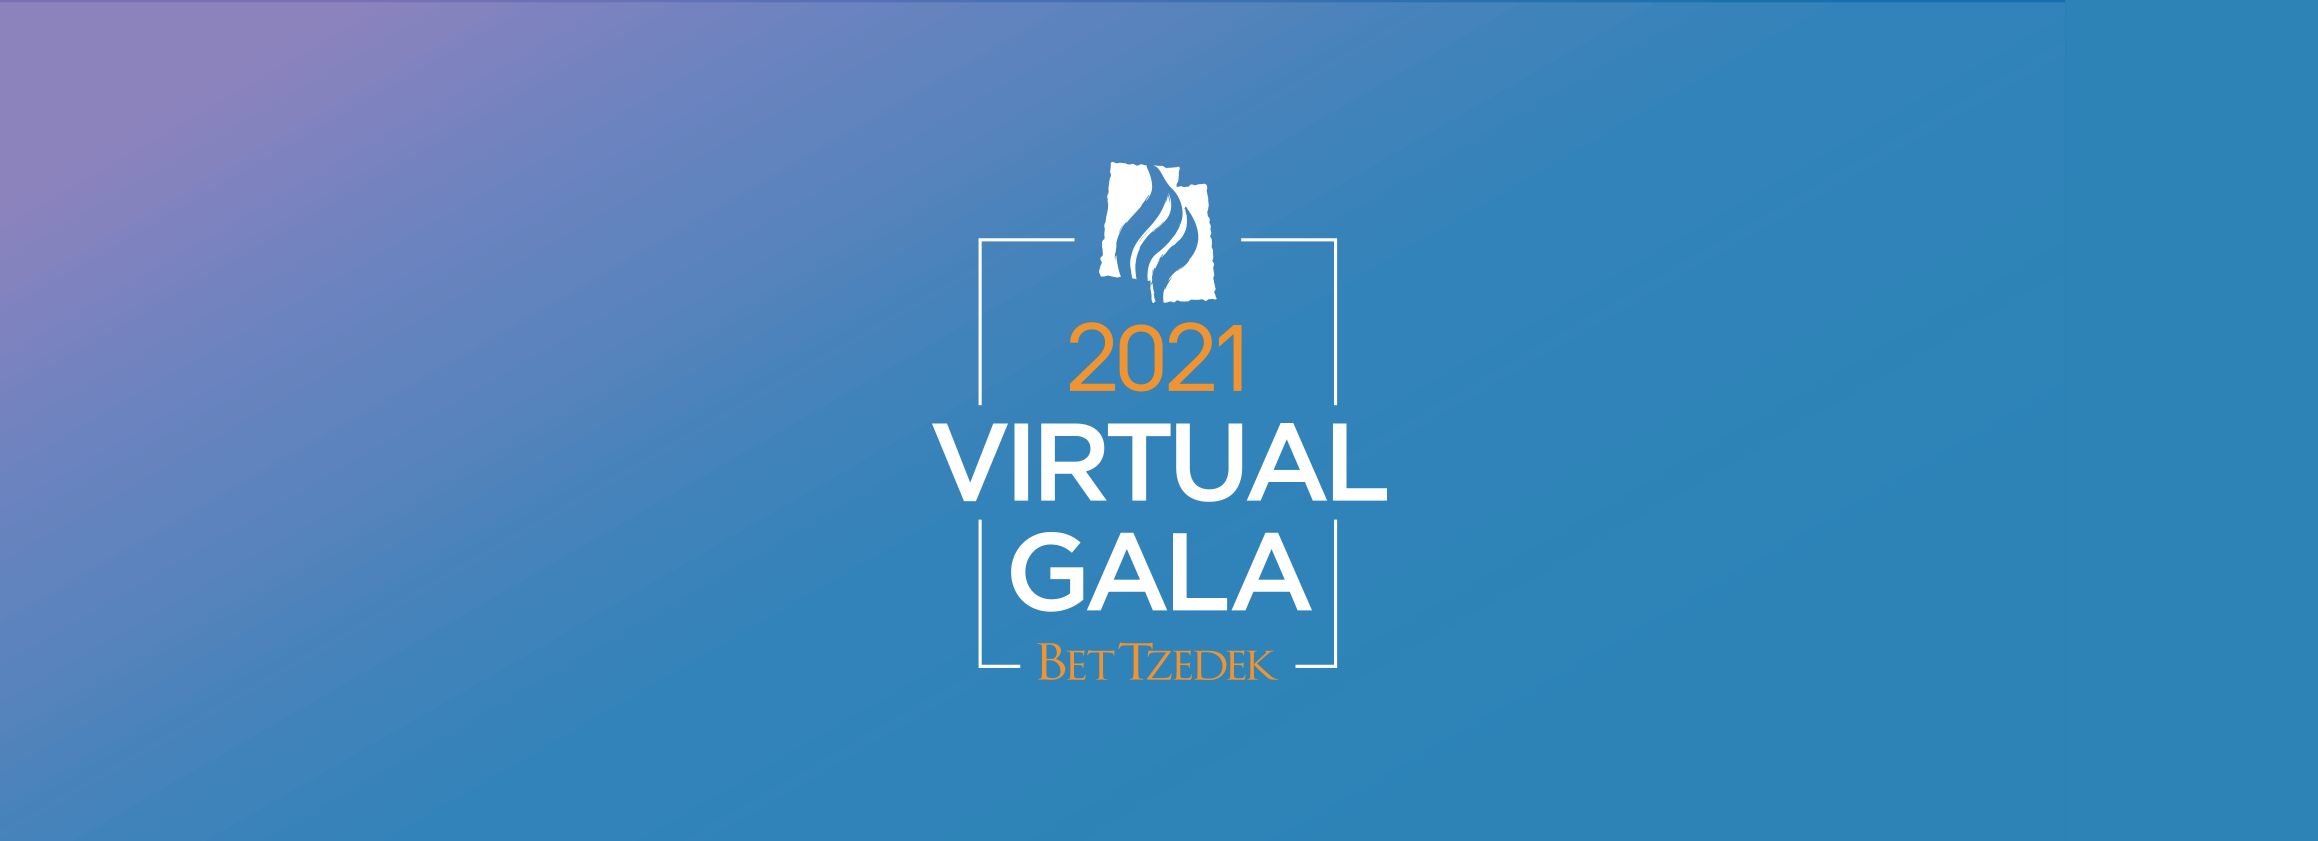 2021 Virtual Gala – Online Donation Form